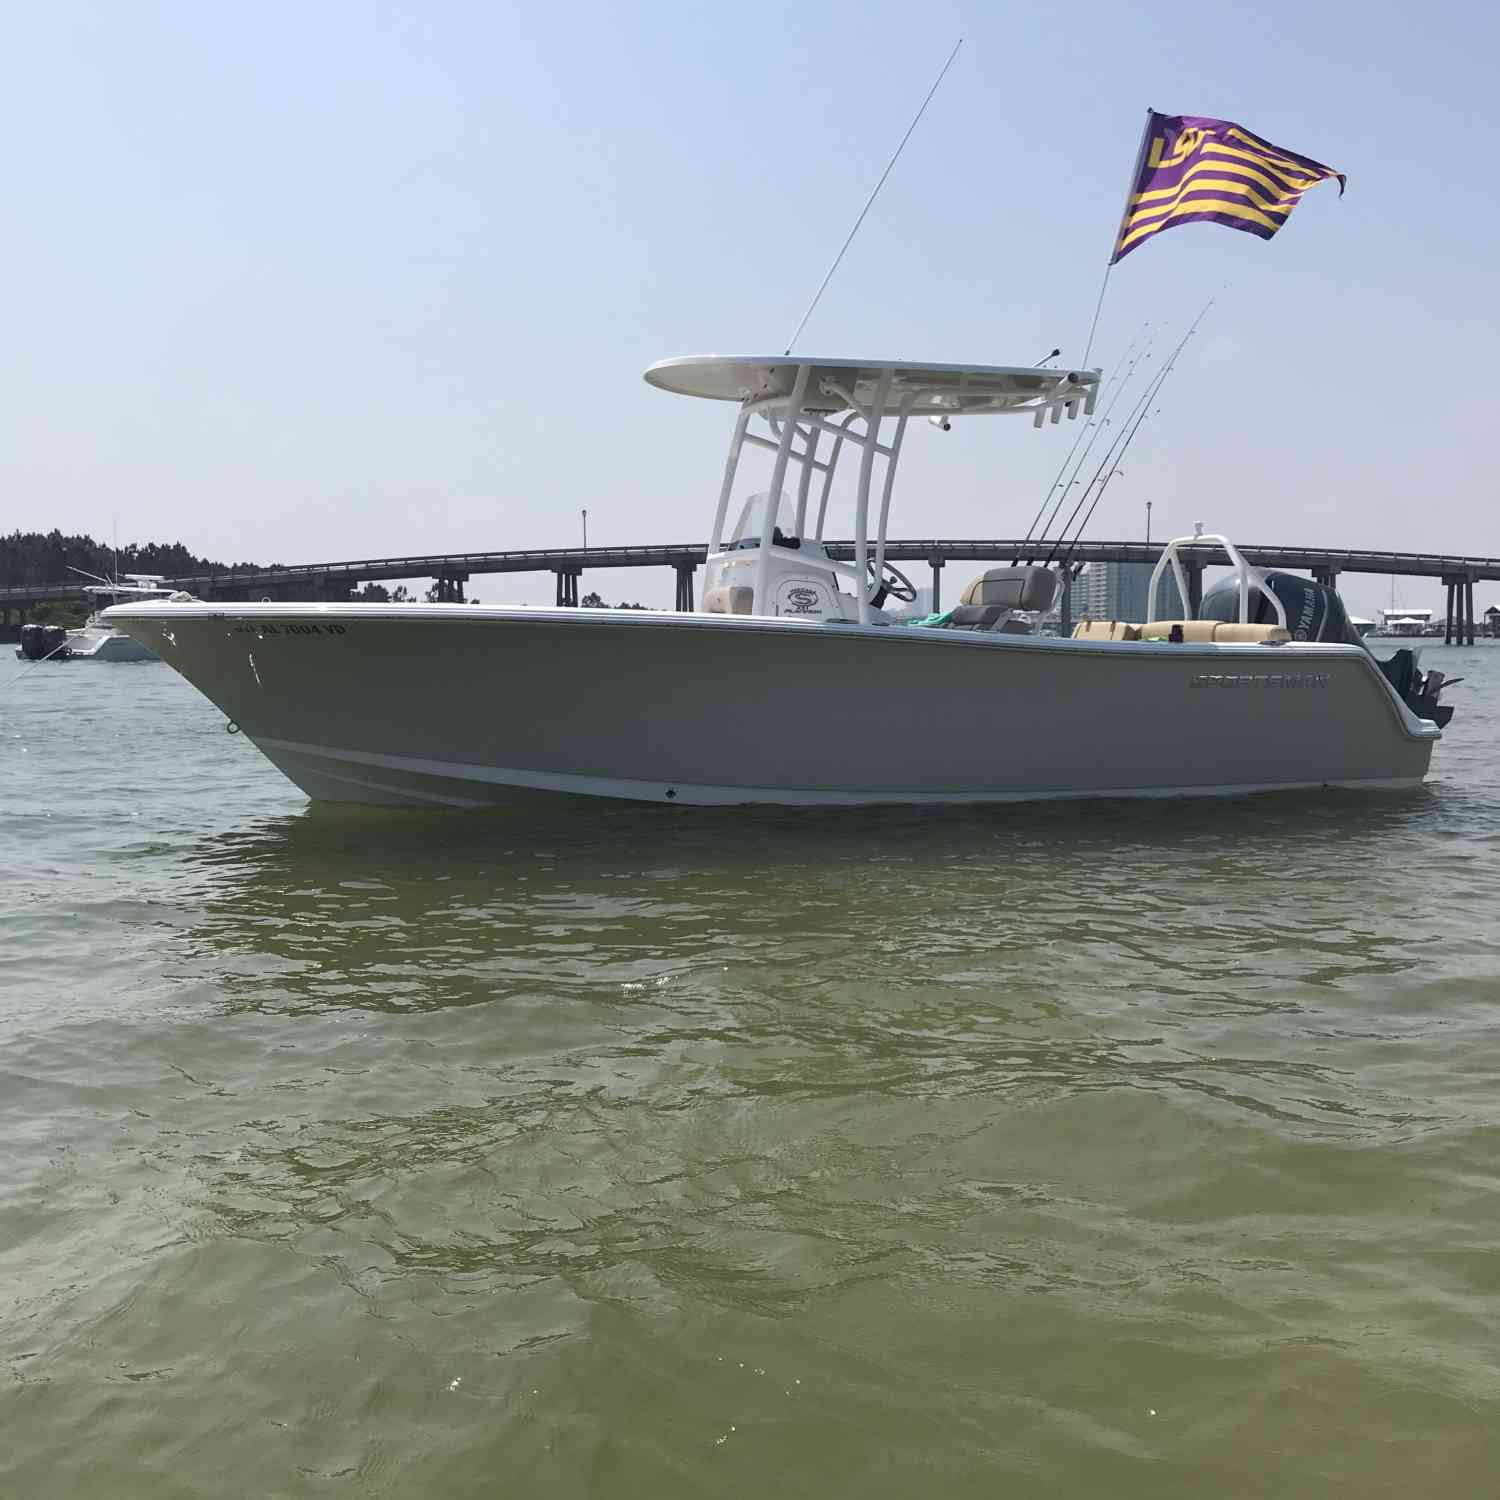 Title: Anchored on the Line - On board their Sportsman Heritage 231 Center Console - Location: Orange Beach, AL. Participating in the Photo Contest #SportsmanMay2020